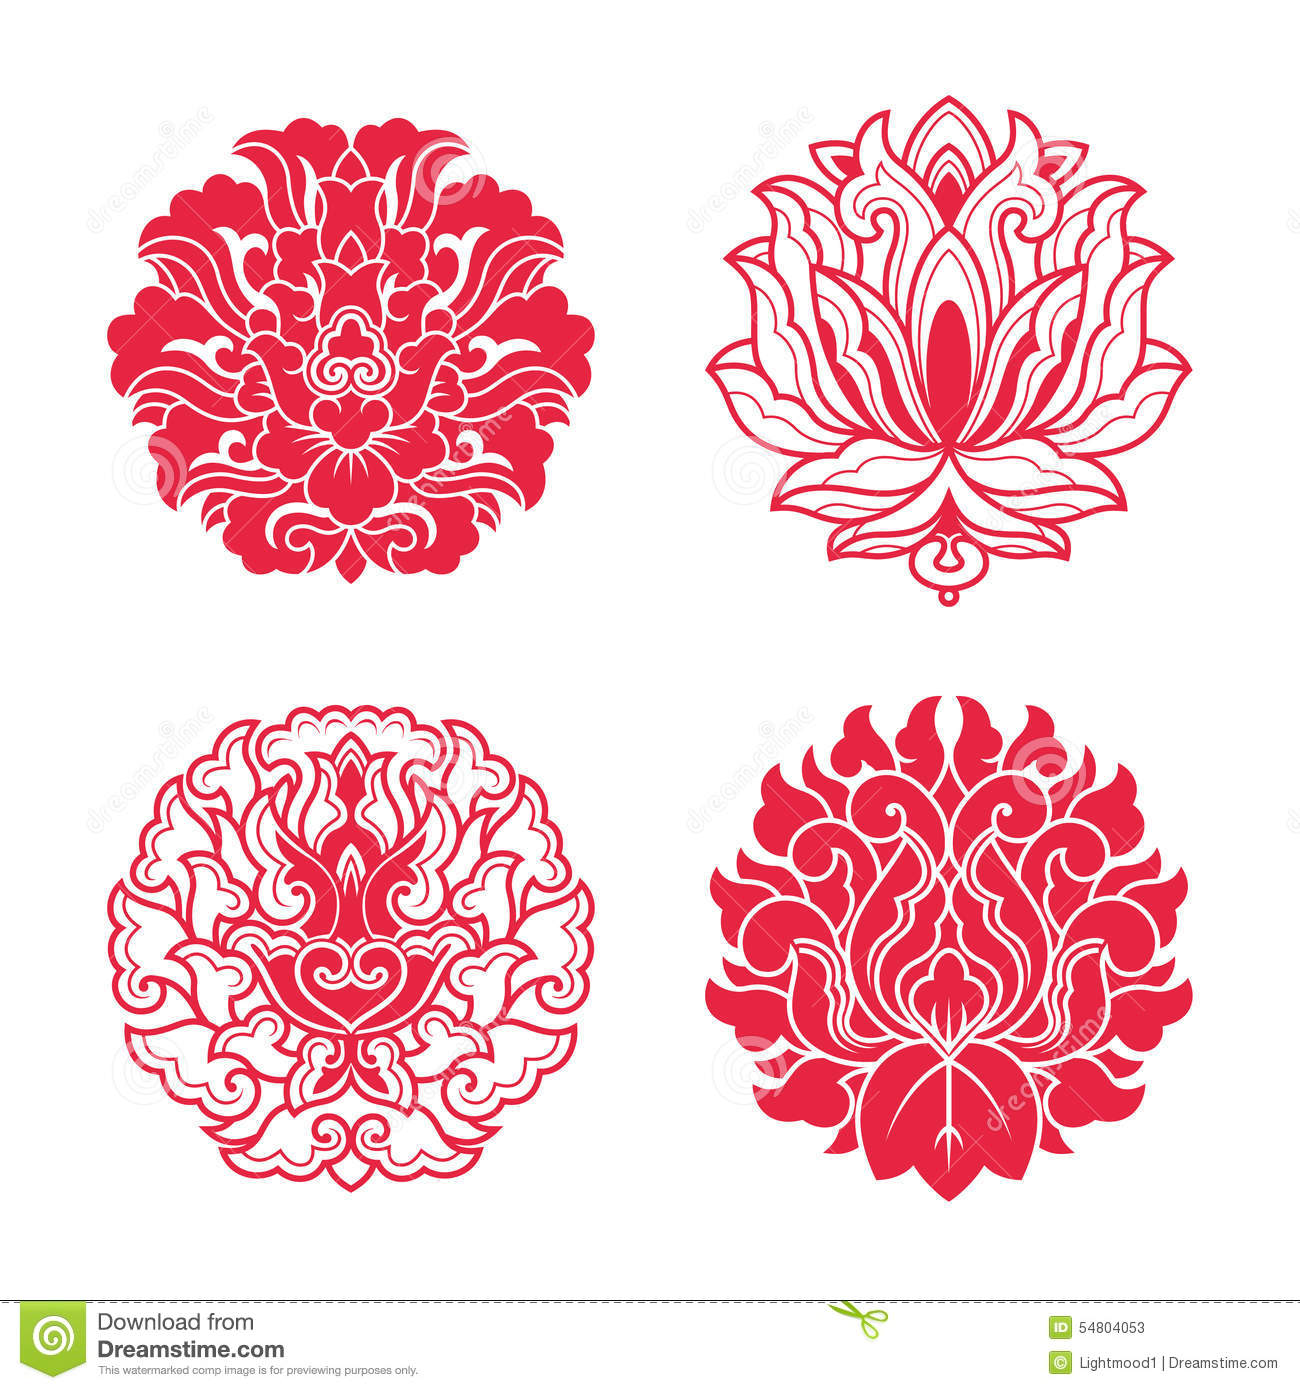 fe084f790 Flower Patterns Of Chinese Style Stock Illustration - Illustration ...